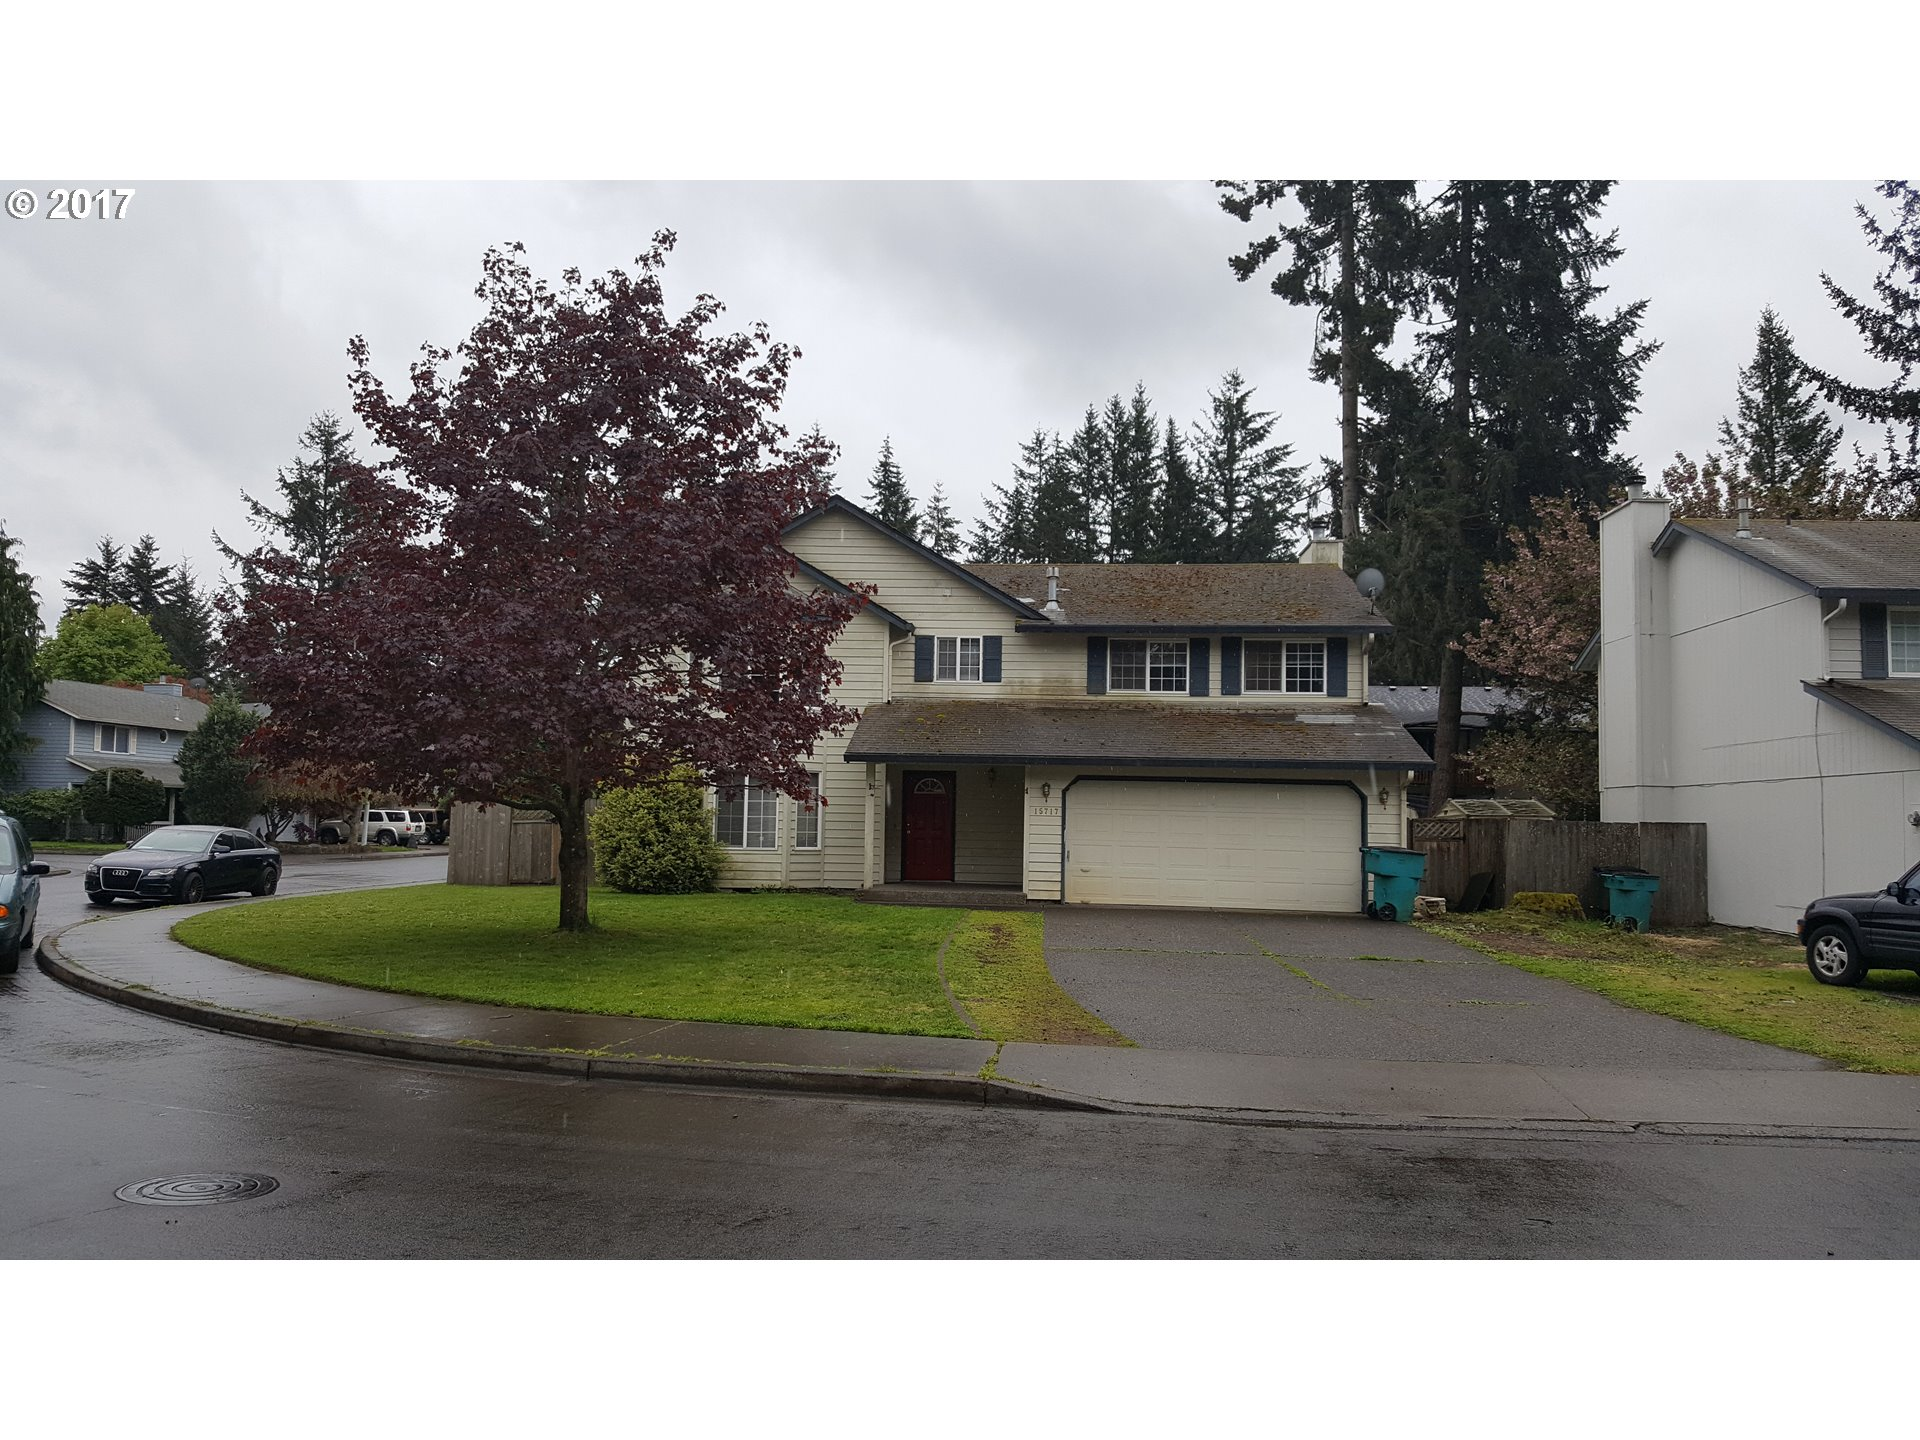 15717 NE 12TH WAY, Vancouver, WA 98684